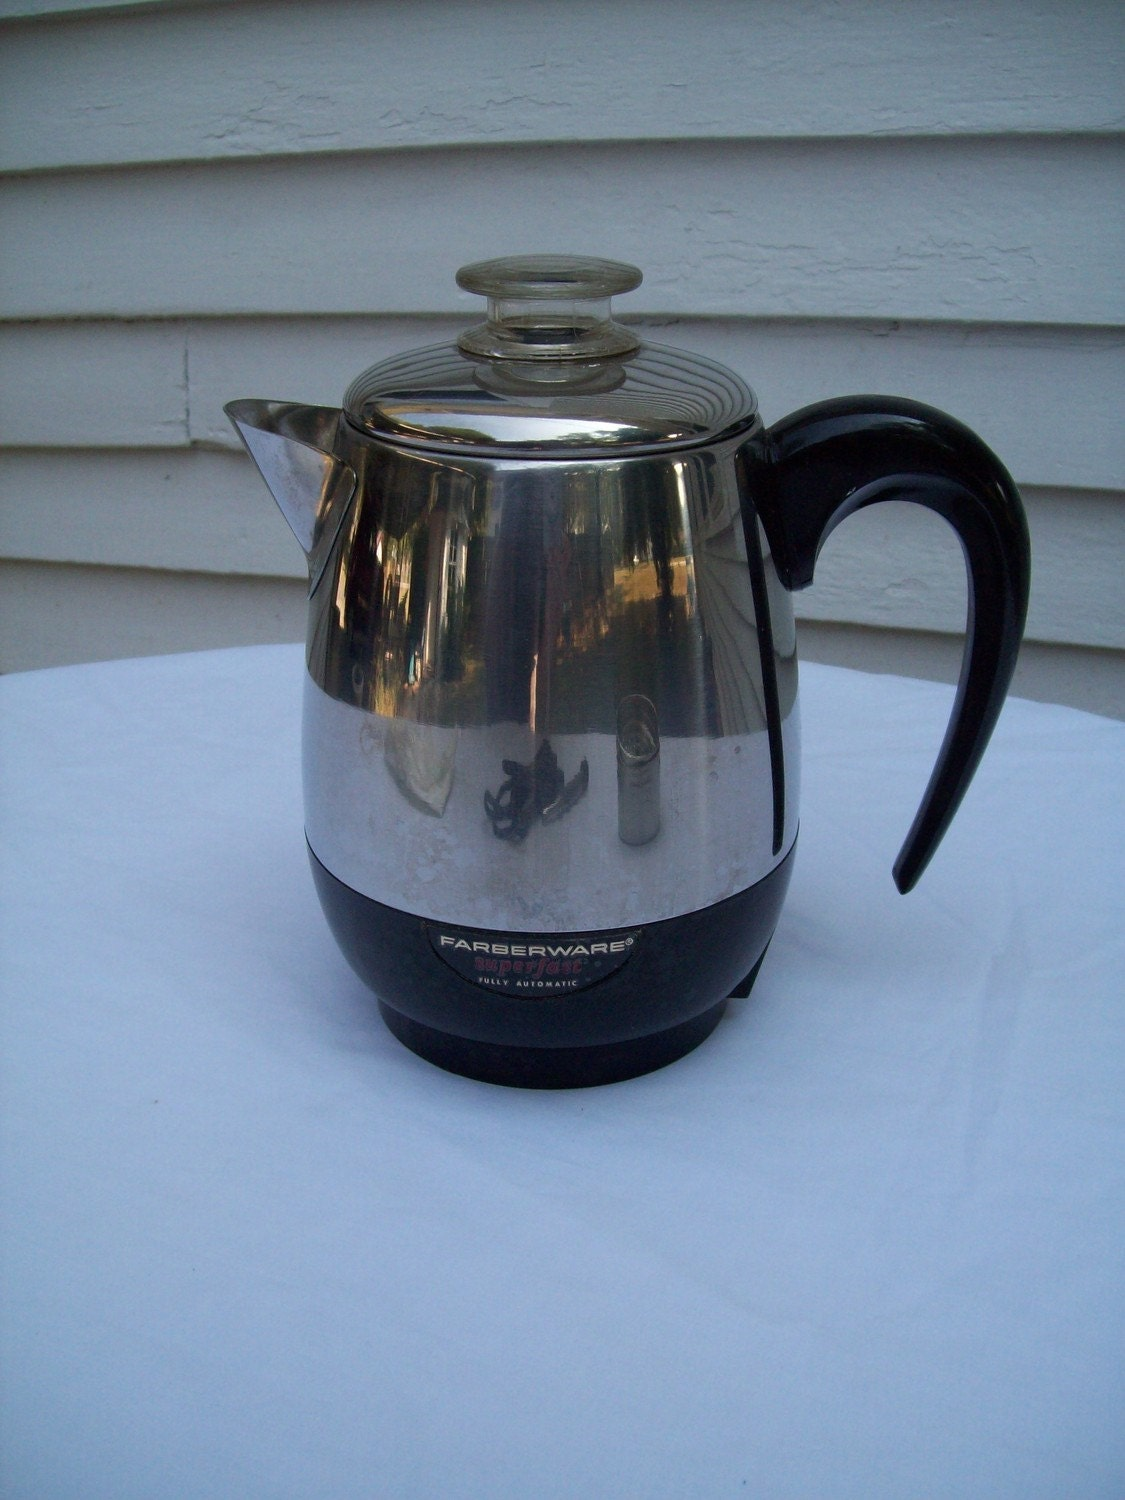 Coffee Maker With Percolator : Vintage Faberware Electric Percolator Coffee Maker 4 by ssmith7157